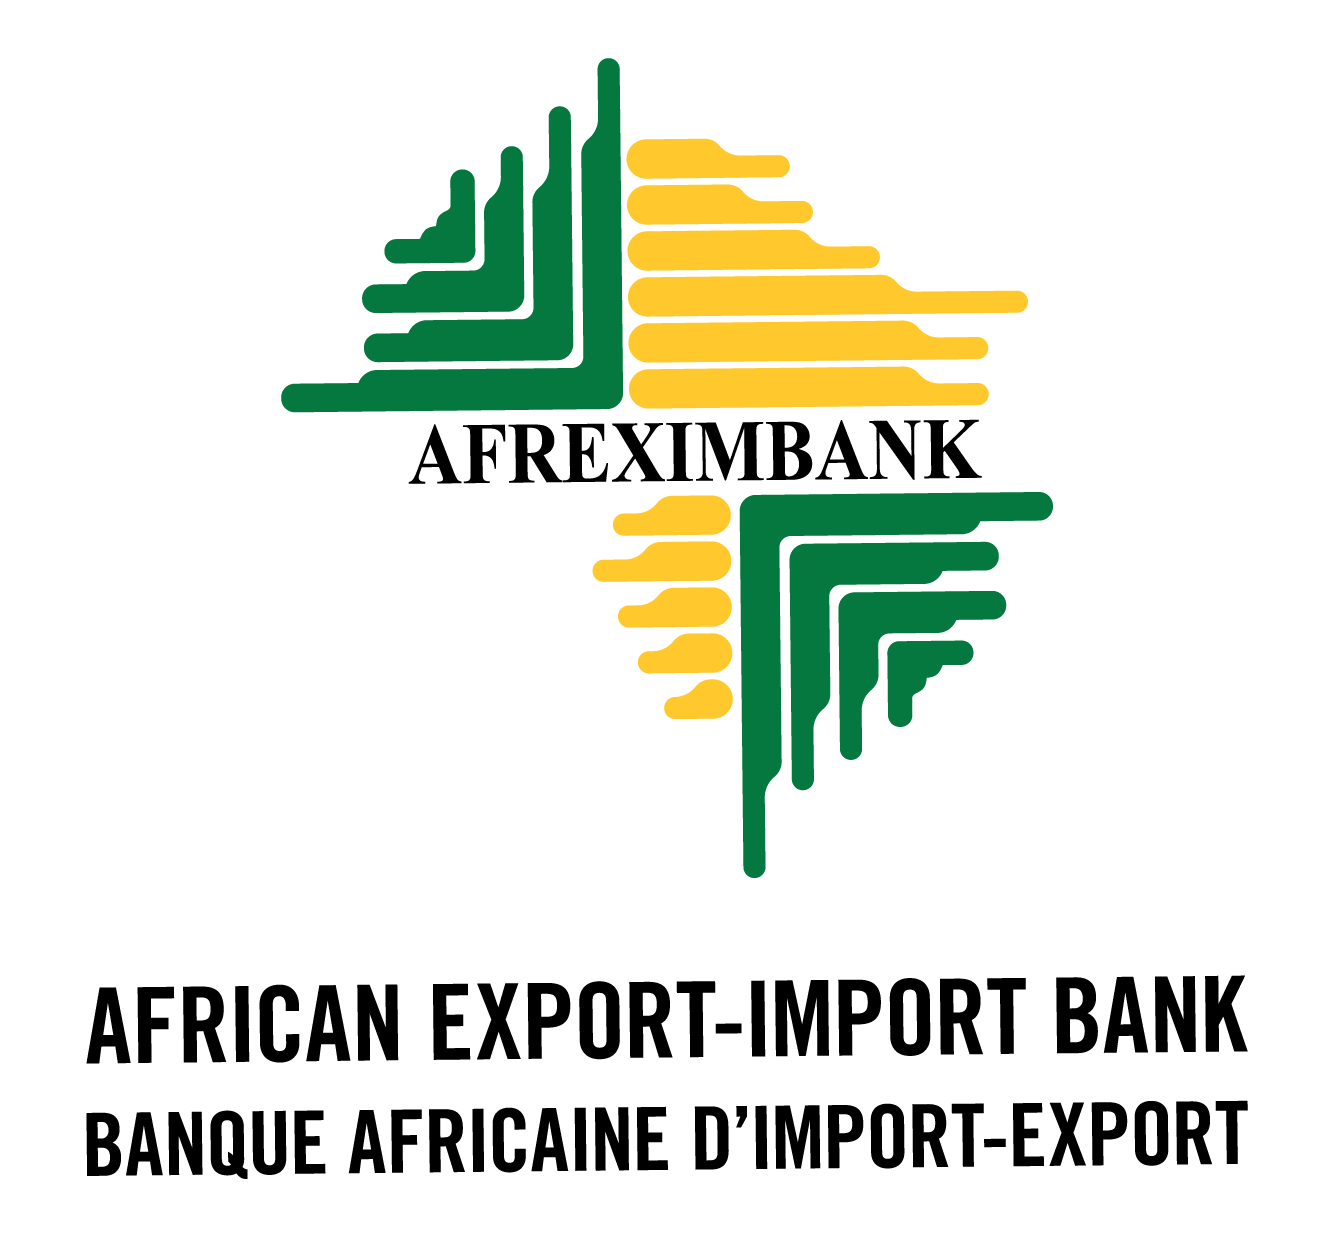 Afreximbank Africa Trade Report 2018 sees AFCFTA yielding substantial benefits to African trade and cross-border investments